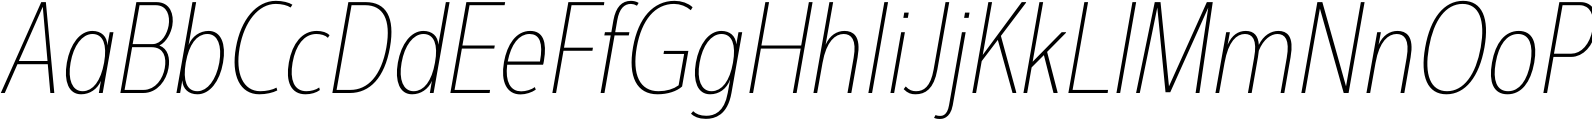 Interval Next Condensed Ultra L Italic Font